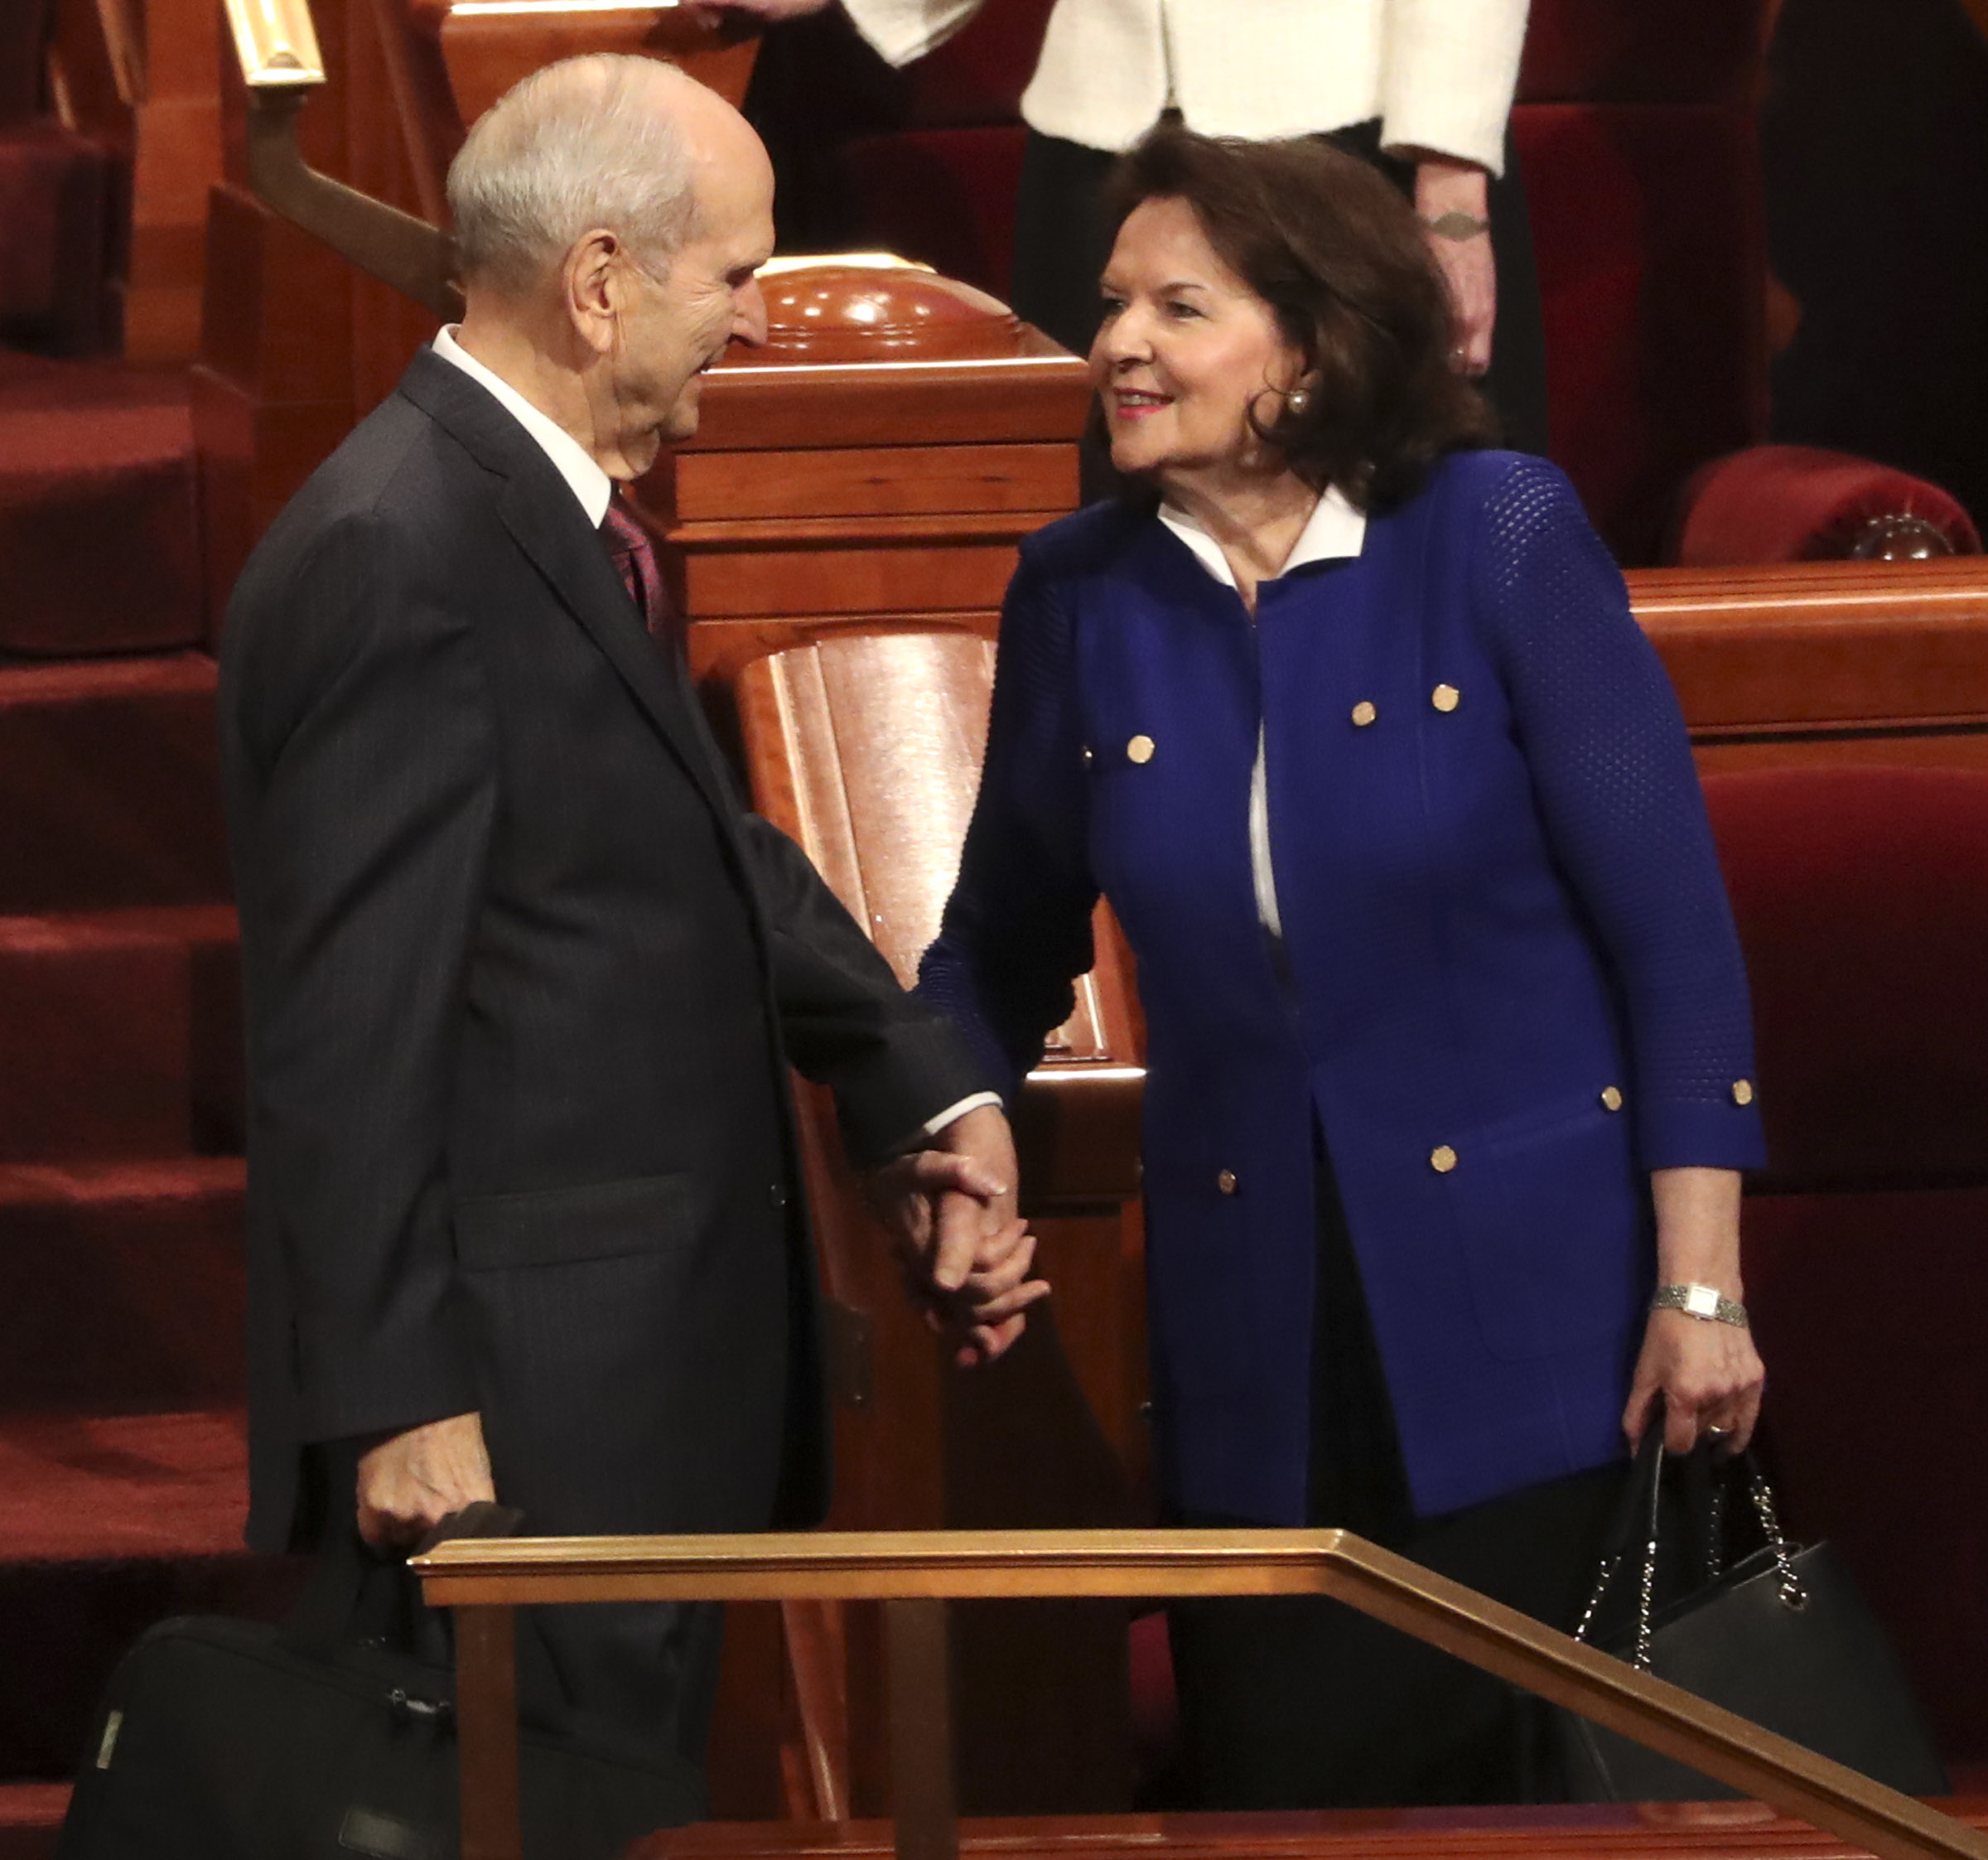 President Russell M. Nelson is greeted by his wife, Sister Wendy Watson Nelson, as they prepare to leave the Conference Center following the morning session of general conference in Salt Lake City on Sunday, April 7, 2019.